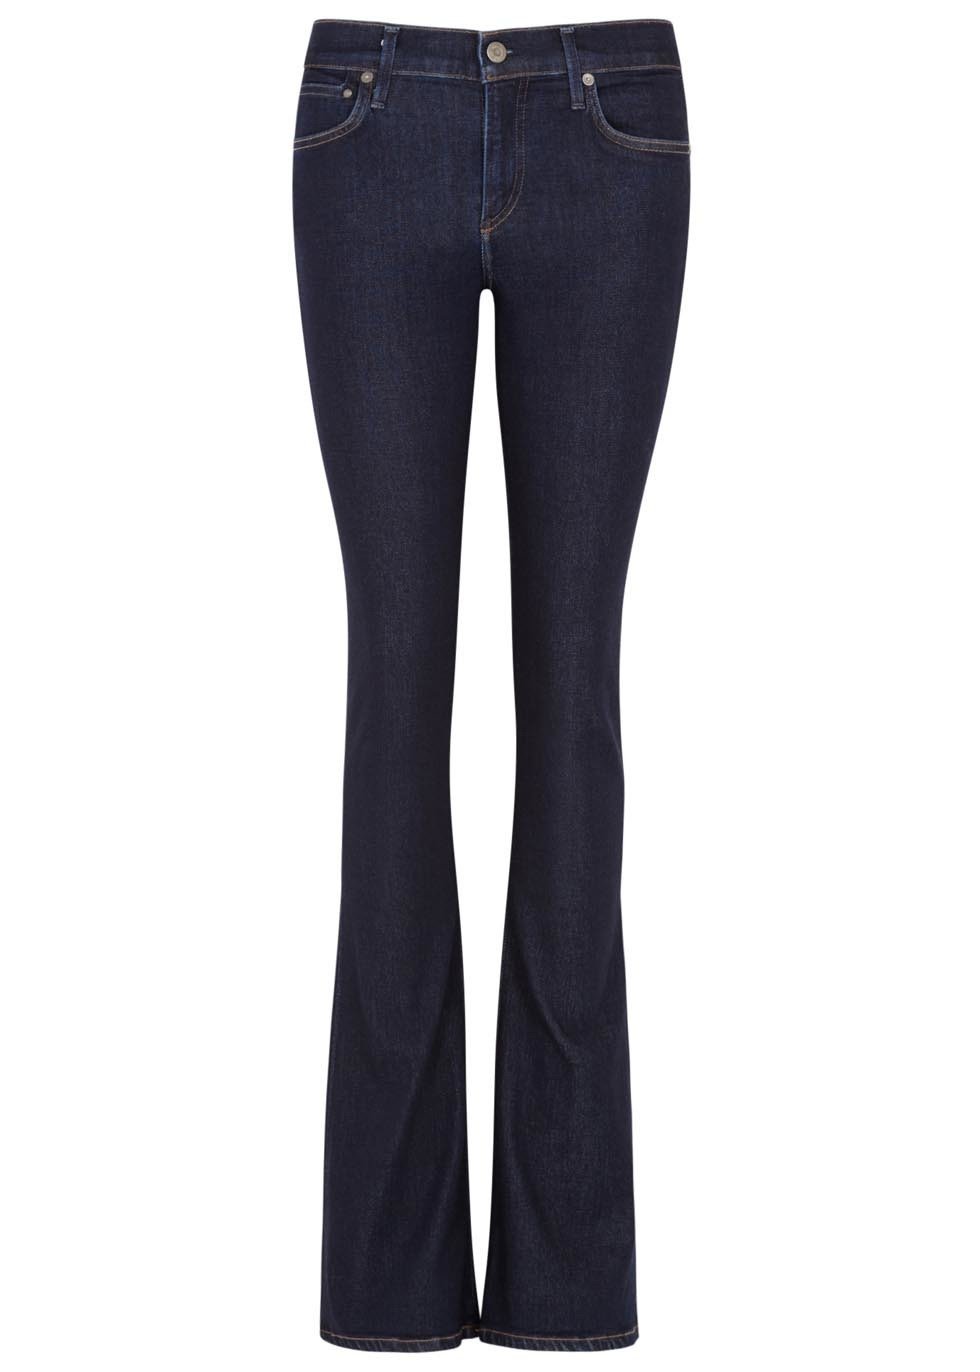 Emannuelle Indigo Flared Jeans - style: flares; length: standard; pattern: plain; pocket detail: traditional 5 pocket; waist: mid/regular rise; predominant colour: navy; occasions: casual, creative work; fibres: cotton - stretch; jeans detail: dark wash; texture group: denim; pattern type: fabric; season: a/w 2015; wardrobe: basic